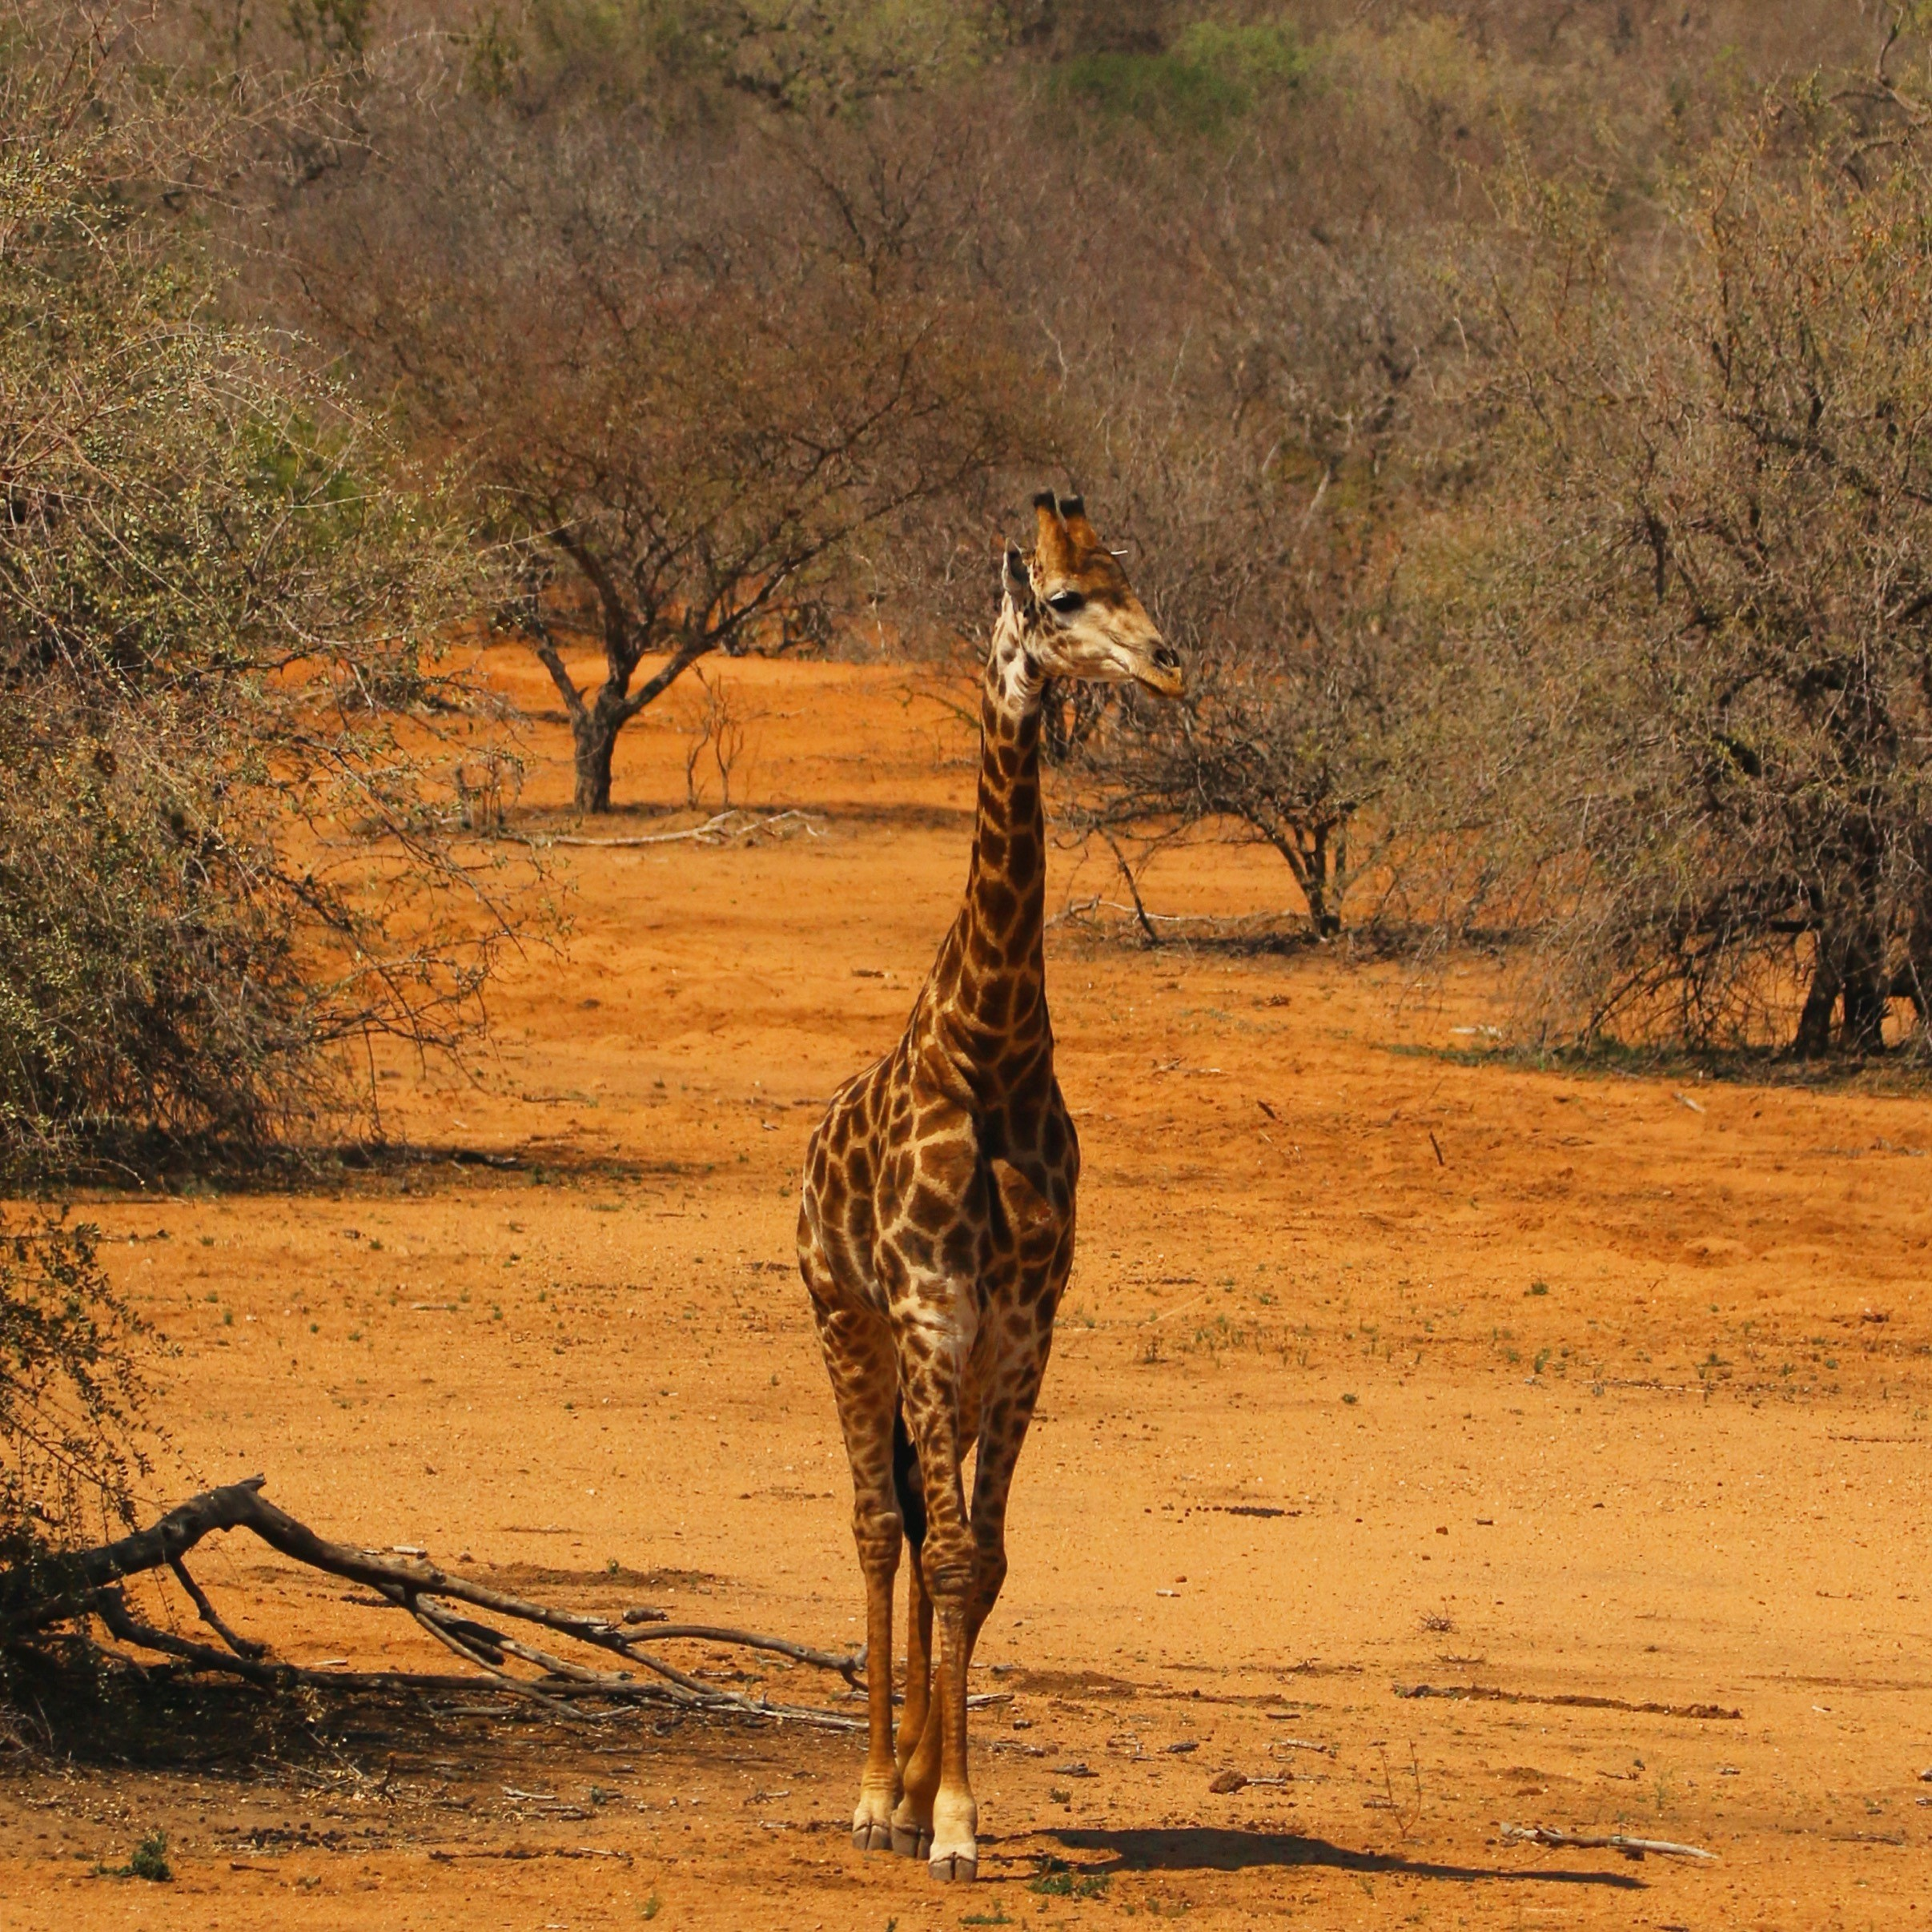 giraffe-south-africa-1